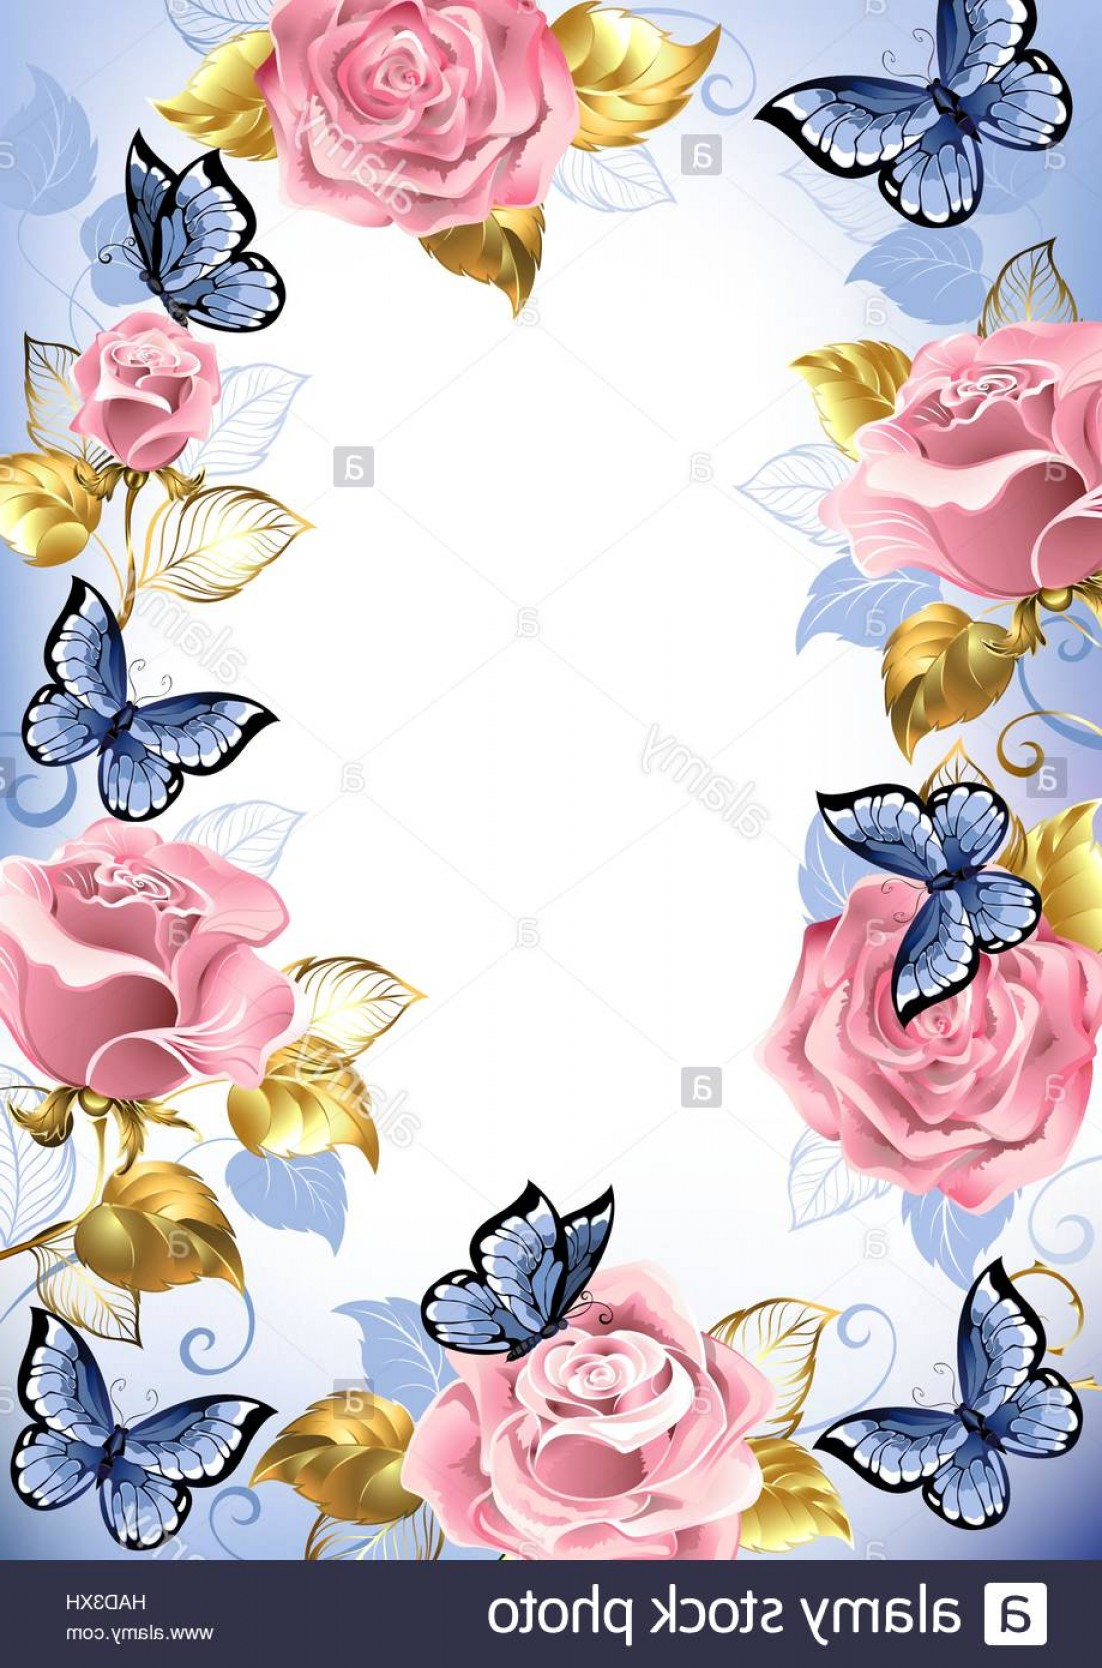 Gold And Blue Flower Vector: Stock Photo Frame With Pink Roses Blue Butterflies Gold And Blue Leaves On A Light